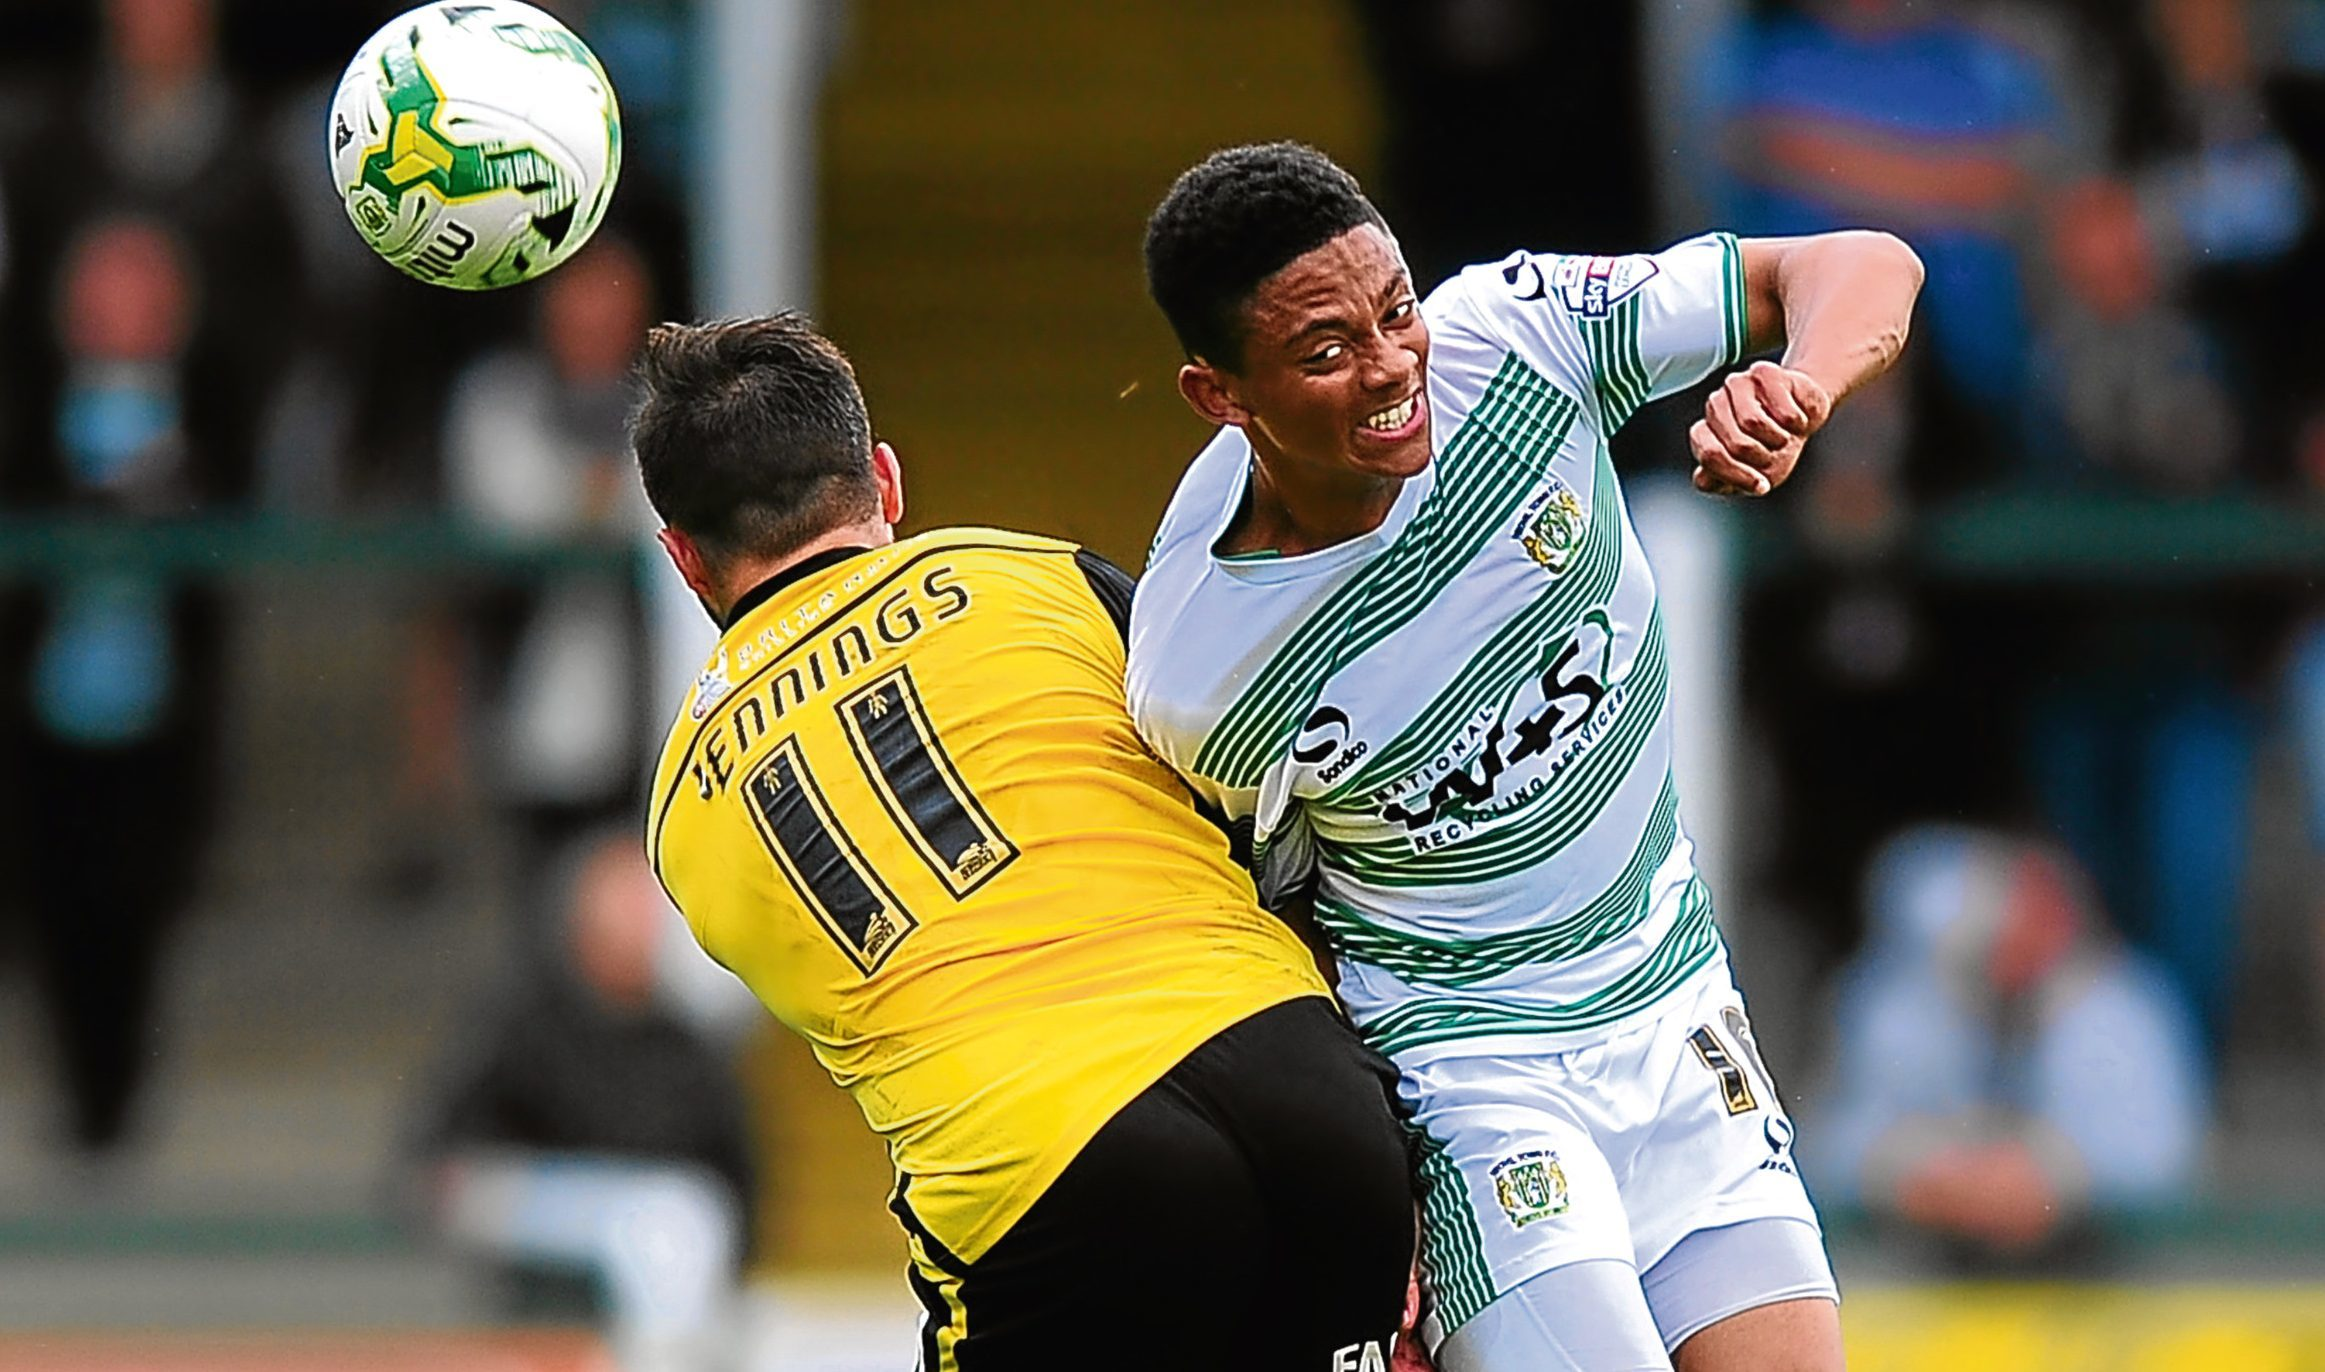 Woking's Nathan Ralph, pictured in action for Yeovil, is attracting interest.